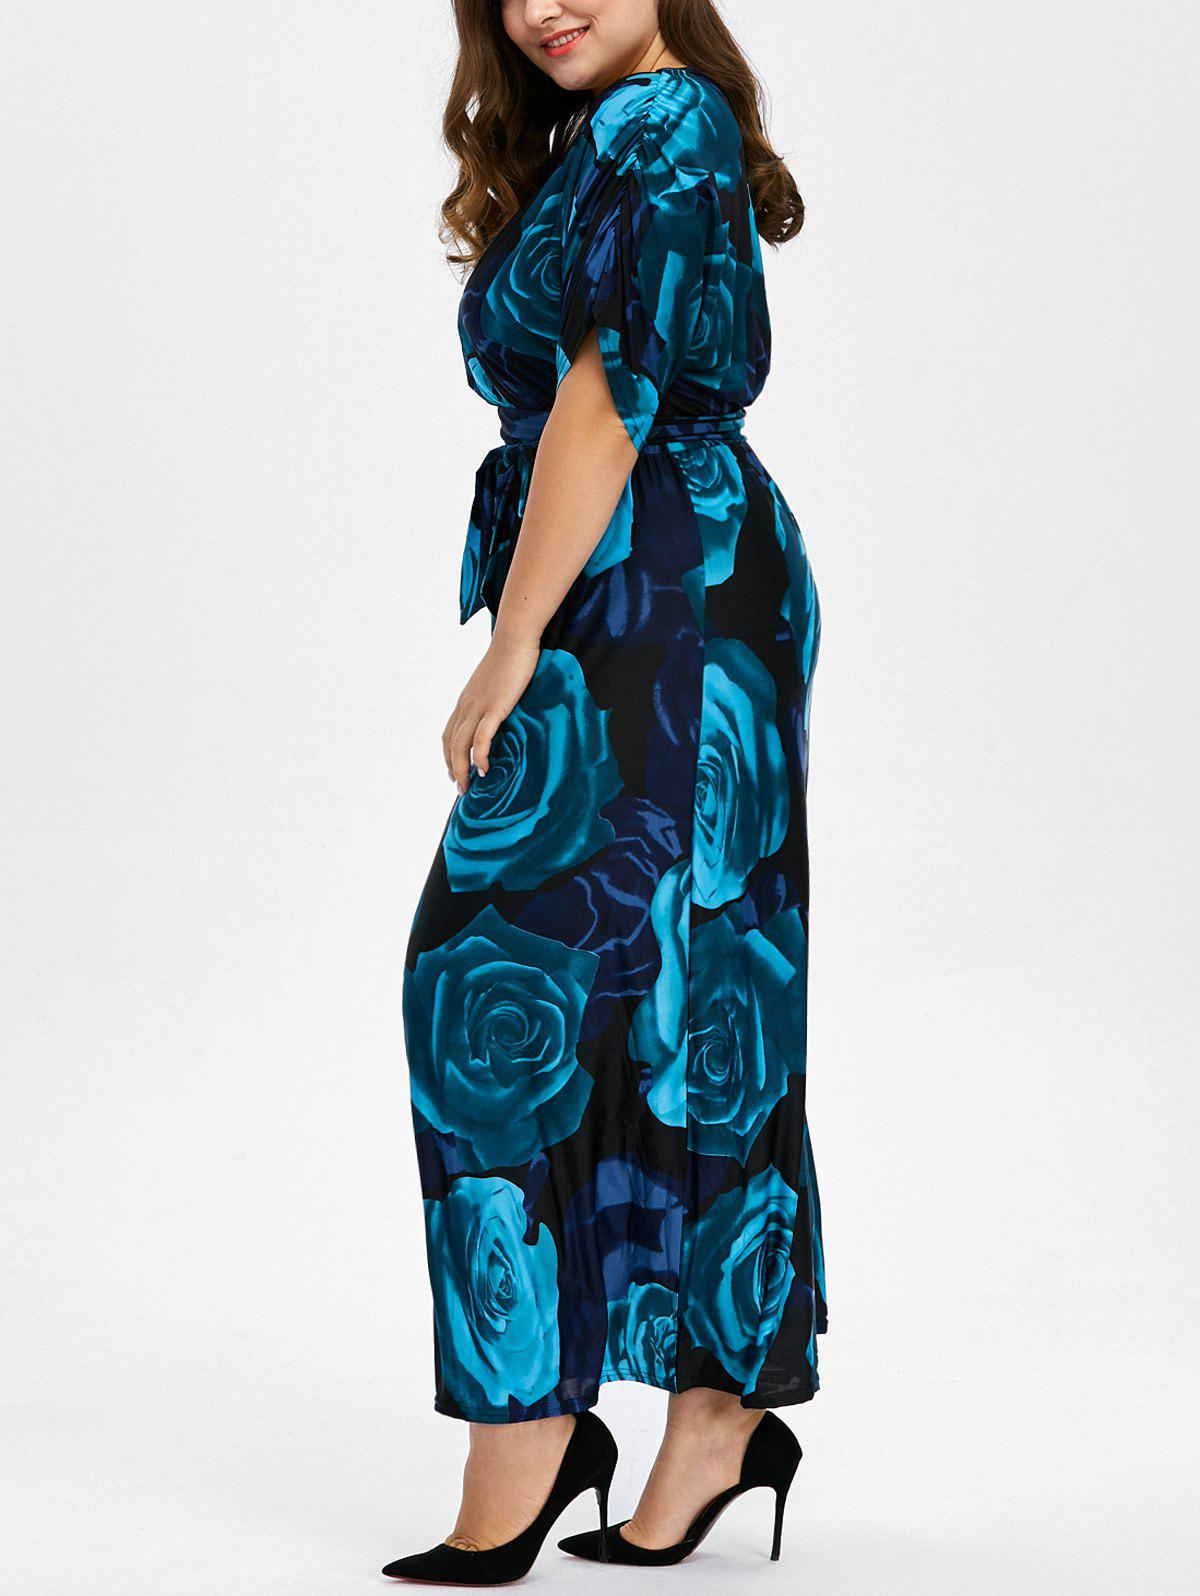 Bohemian Floral Print Plus Size Long Maxi Formal DressWOMEN<br><br>Size: 4XL; Color: DEEP BLUE; Style: Bohemian; Material: Polyester; Silhouette: A-Line; Dresses Length: Ankle-Length; Neckline: V-Neck; Sleeve Length: Short Sleeves; Pattern Type: Floral; With Belt: No; Season: Fall,Spring; Weight: 0.5000kg; Package Contents: 1 x Dress;